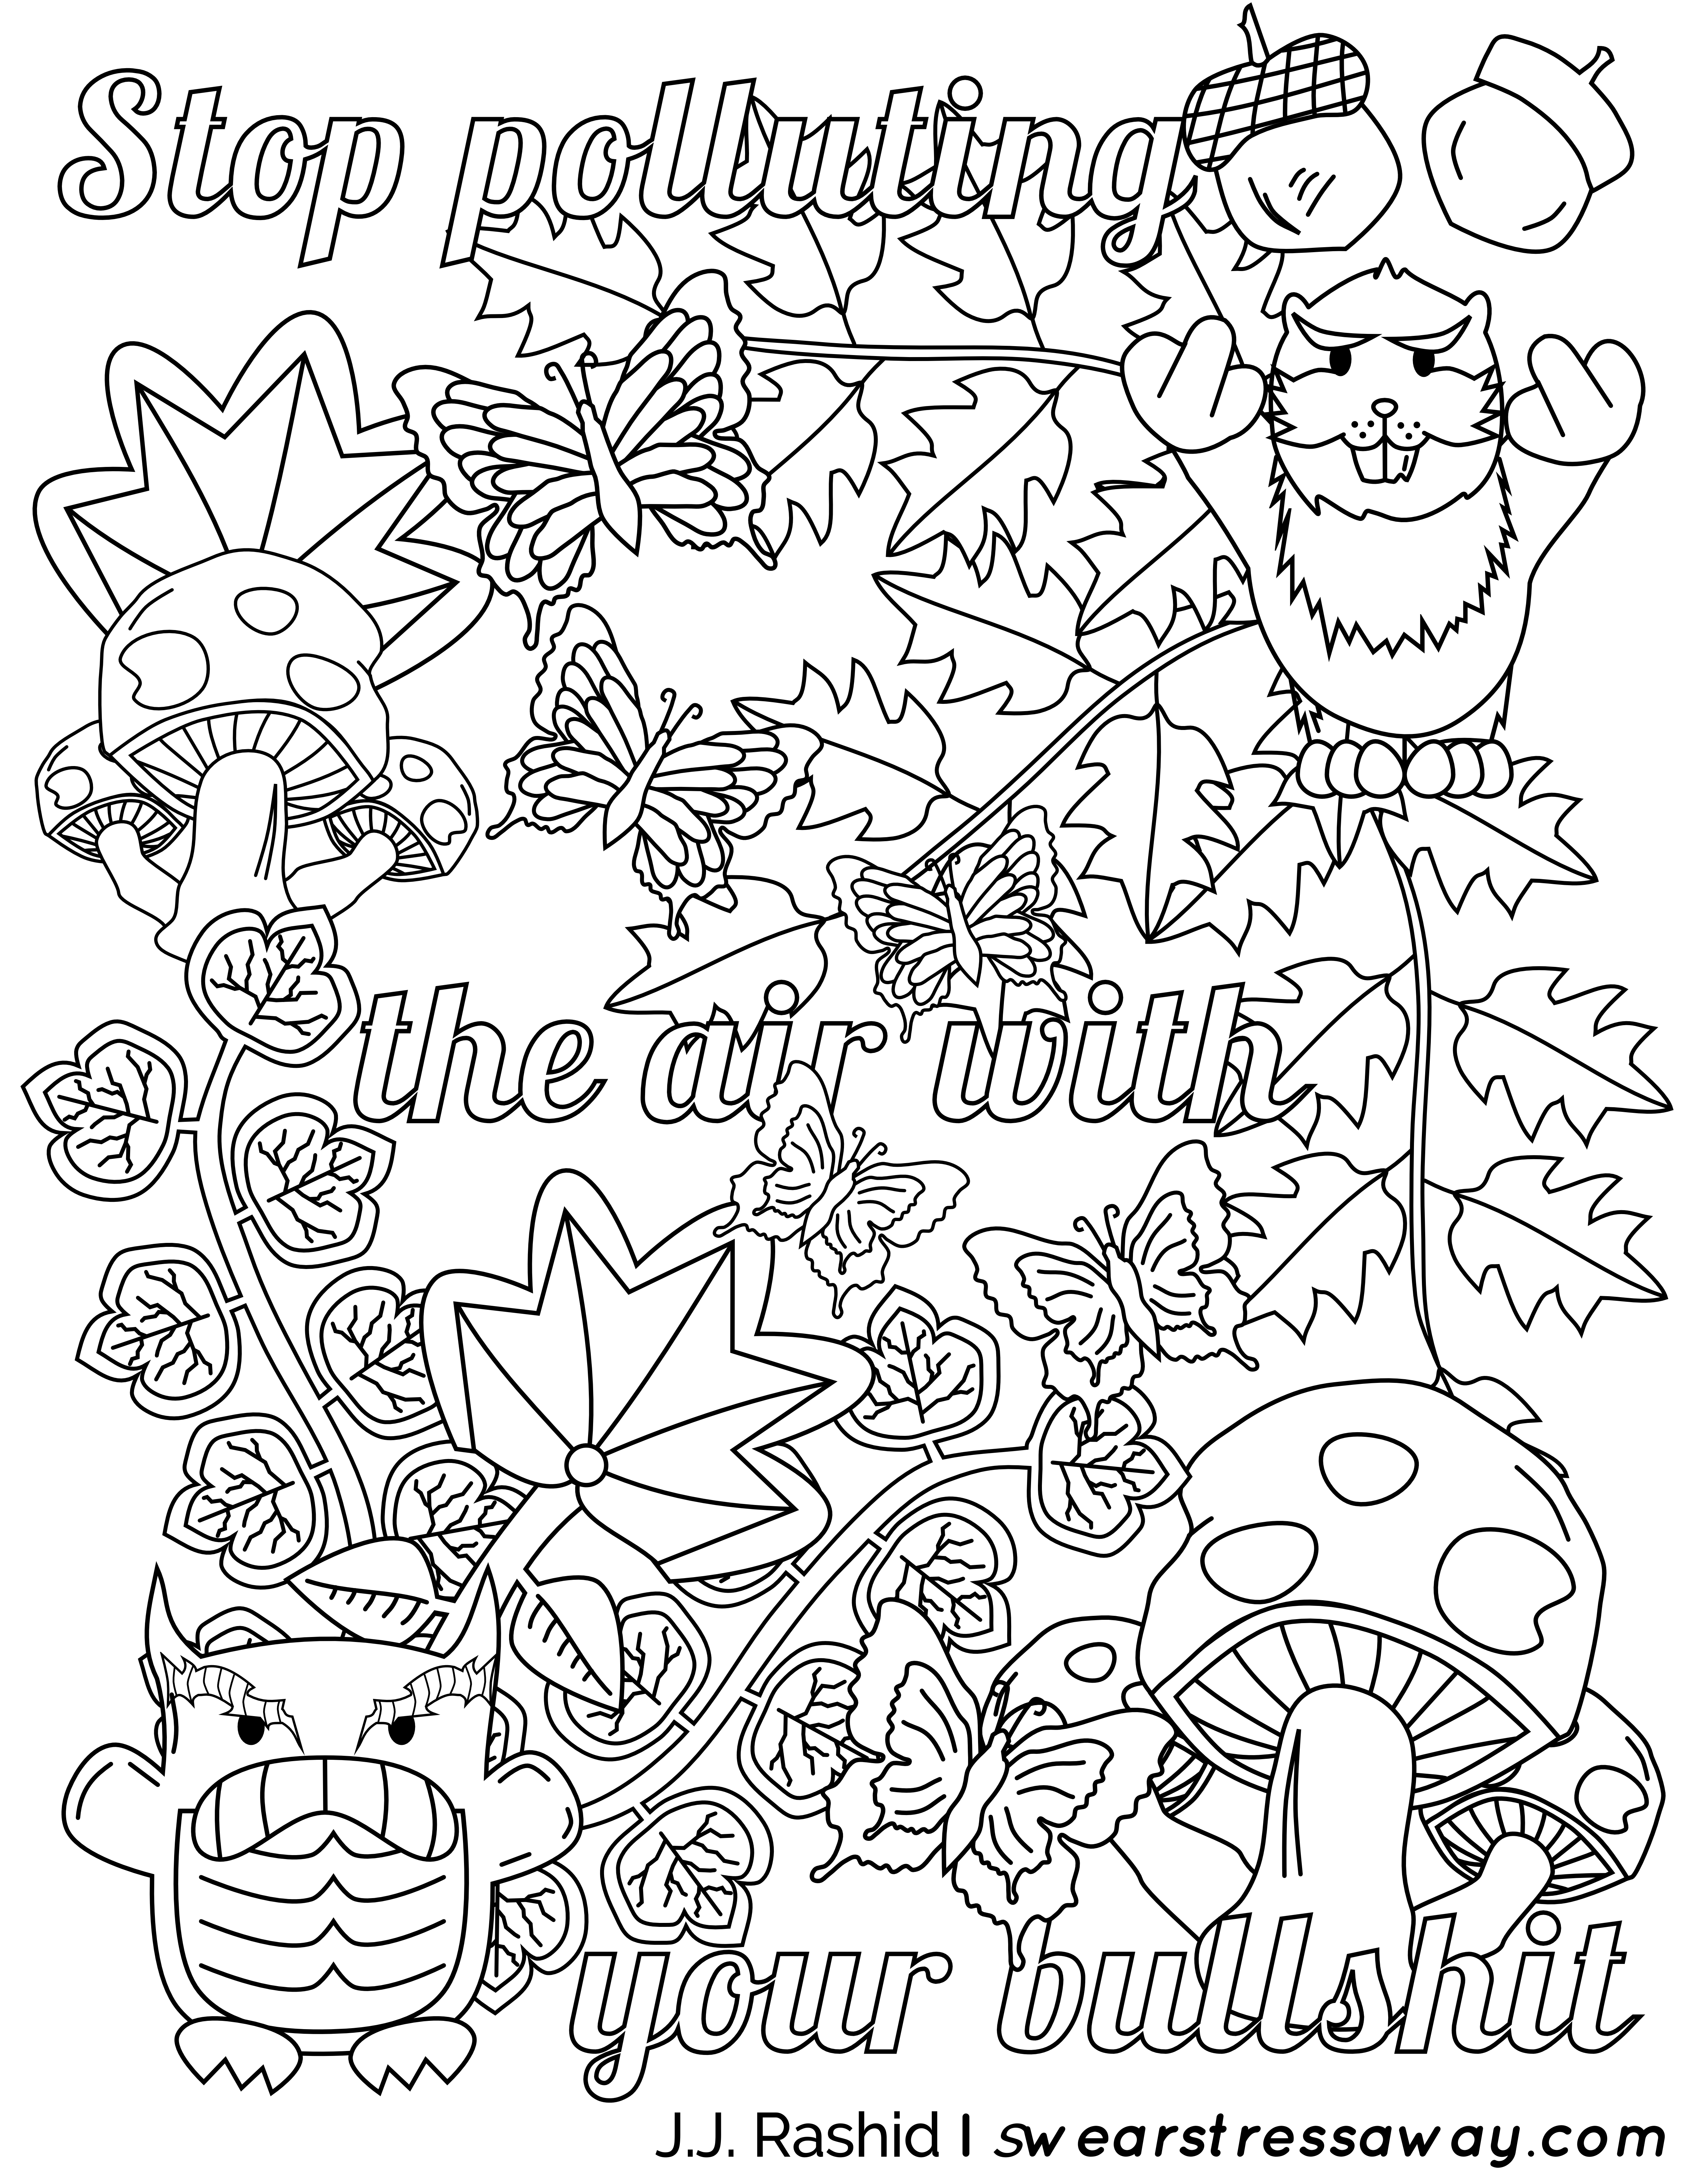 5100x6600 Stop Polluting The Air With Your Bullshit Adult Coloring Page